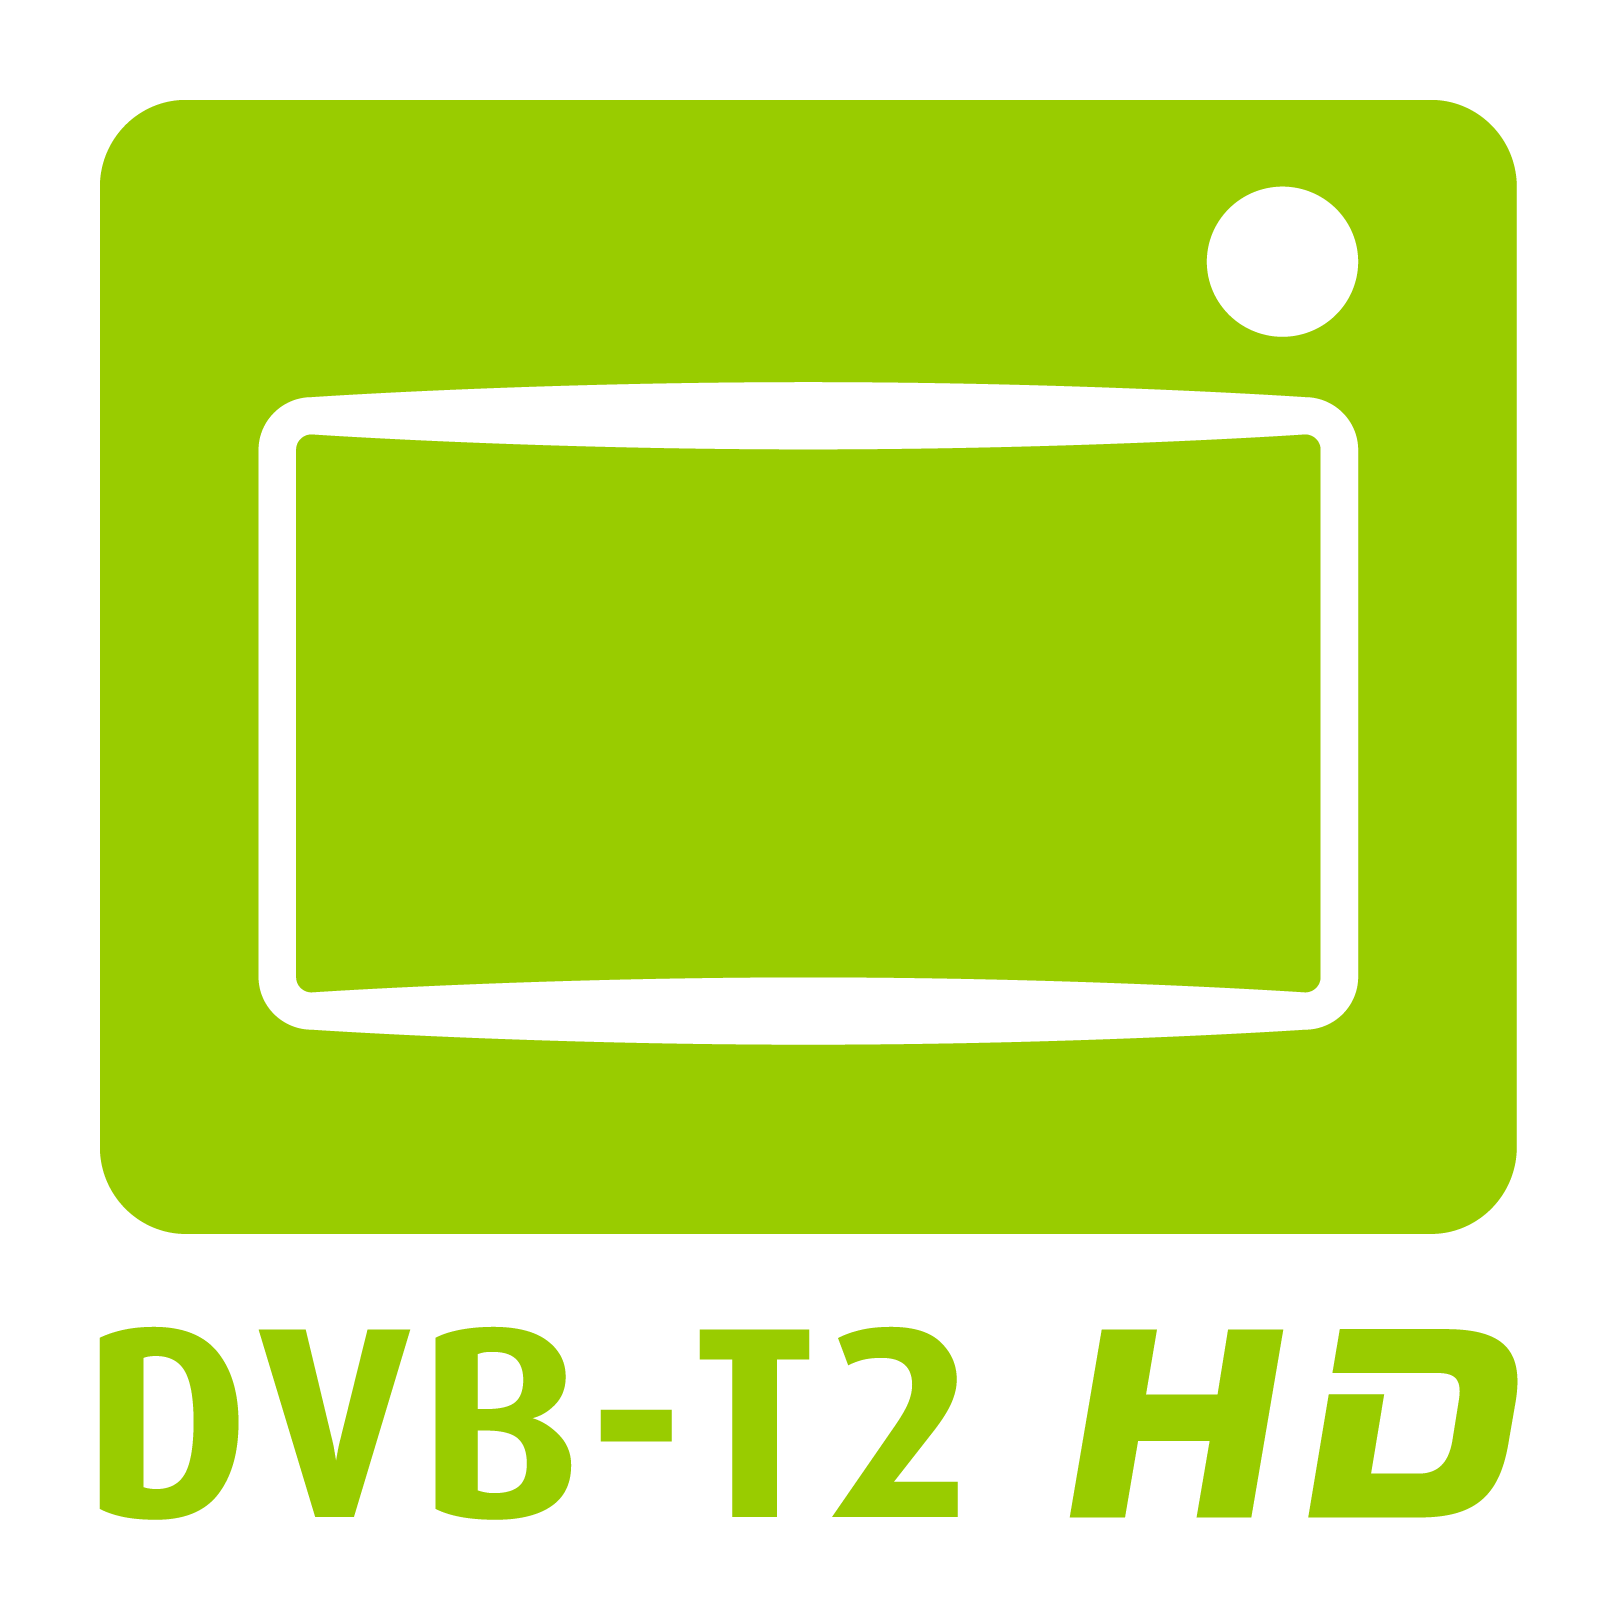 Are there plans to add DVB.